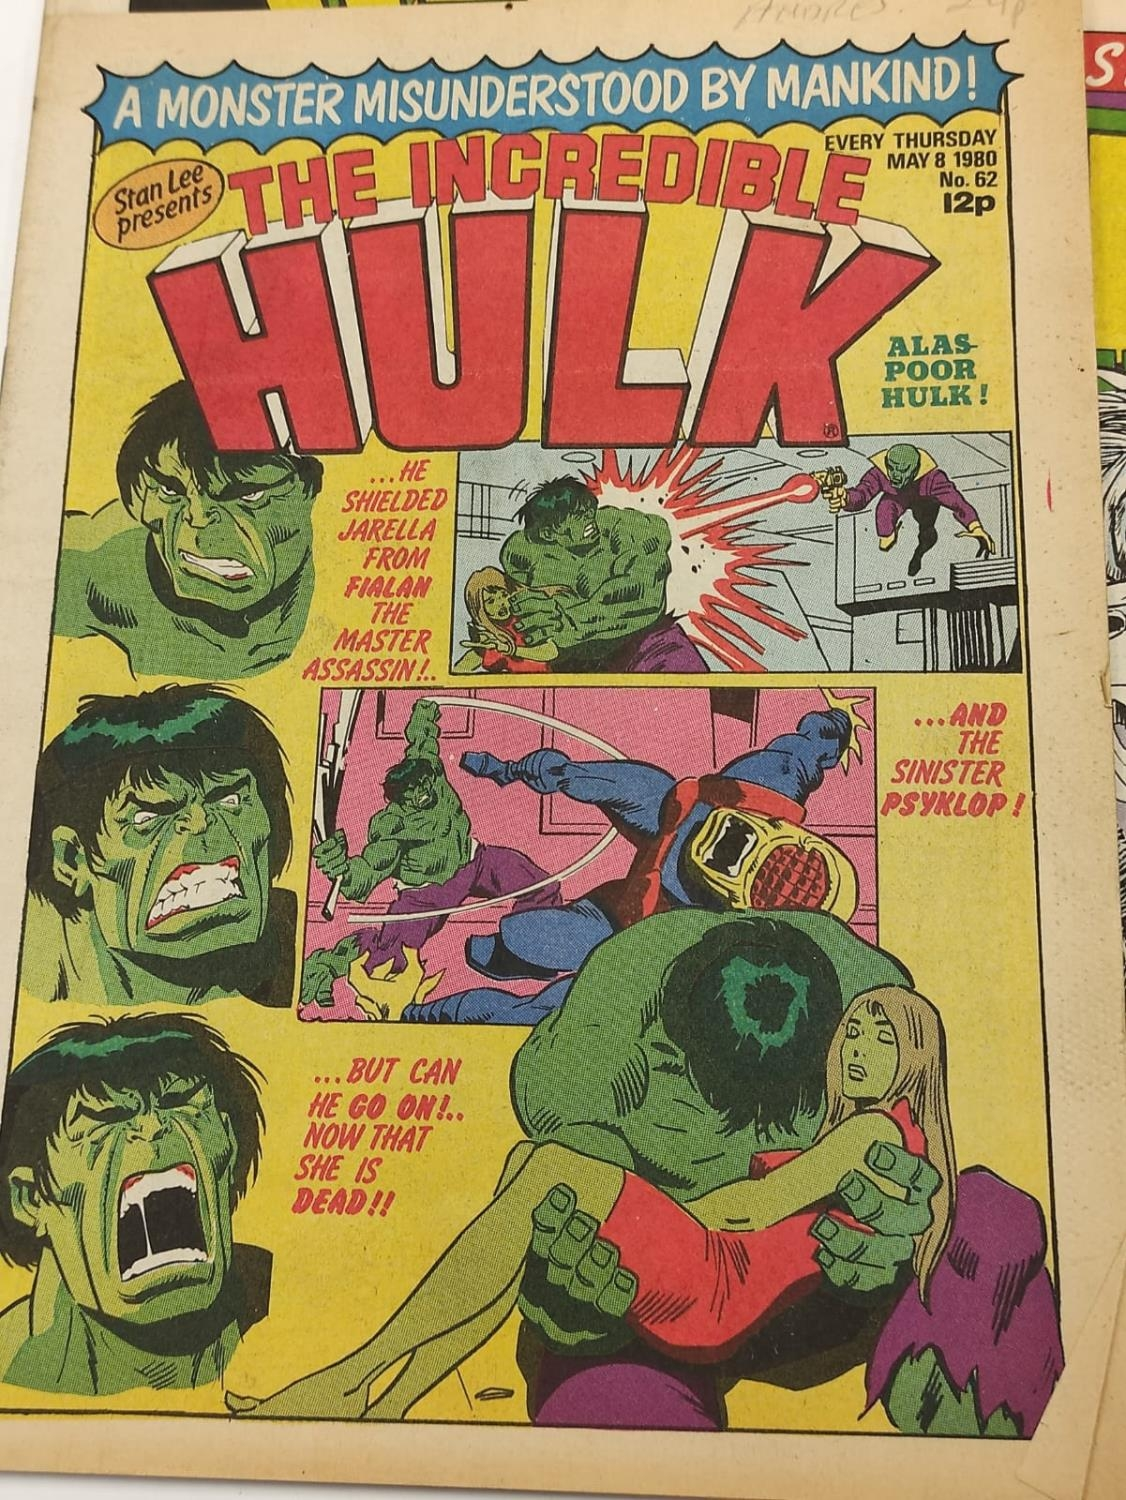 50 editions of Stan Lee Presents, a selection of 1979/1980's comics. - Image 15 of 71